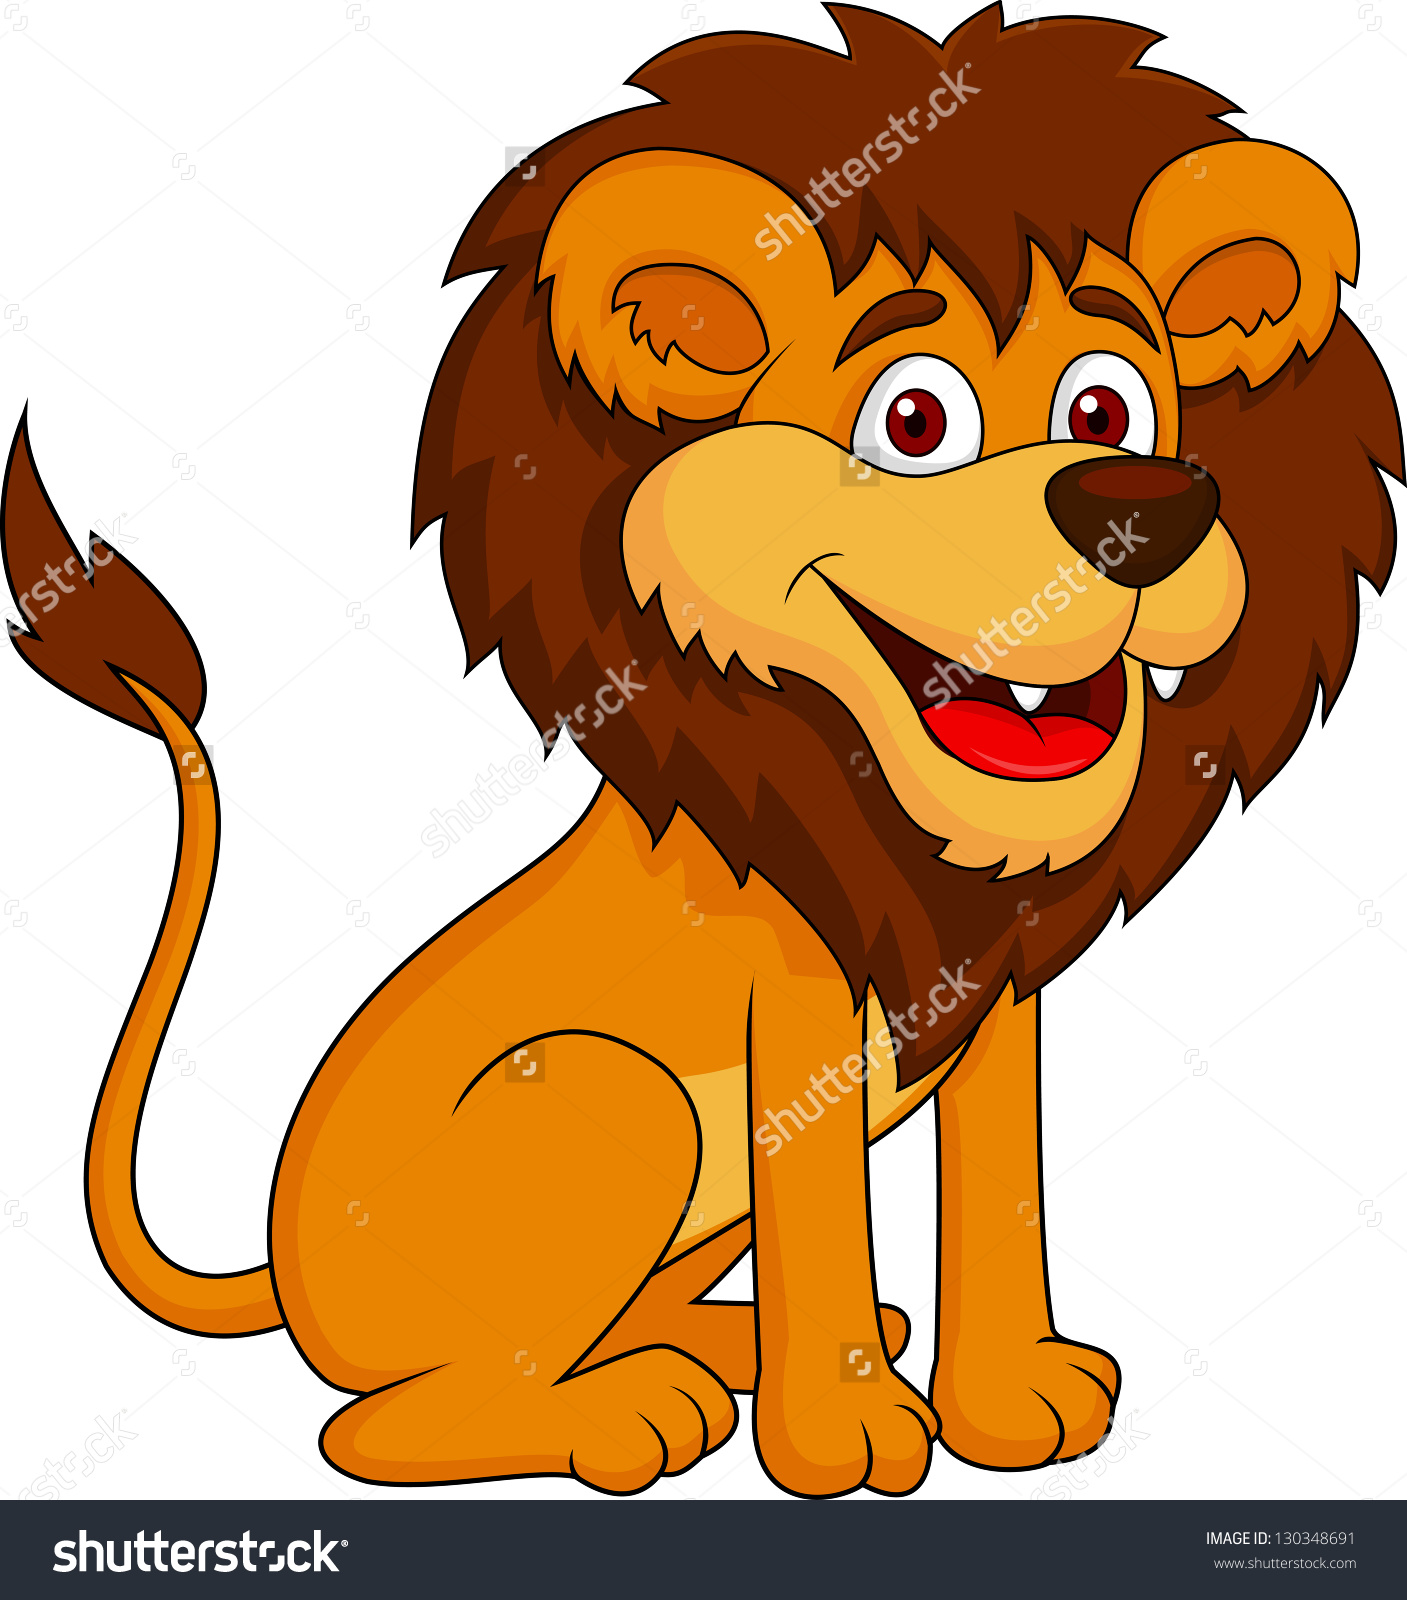 Smiling Lion Cartoon Sitting Stock Illustration 130348691.